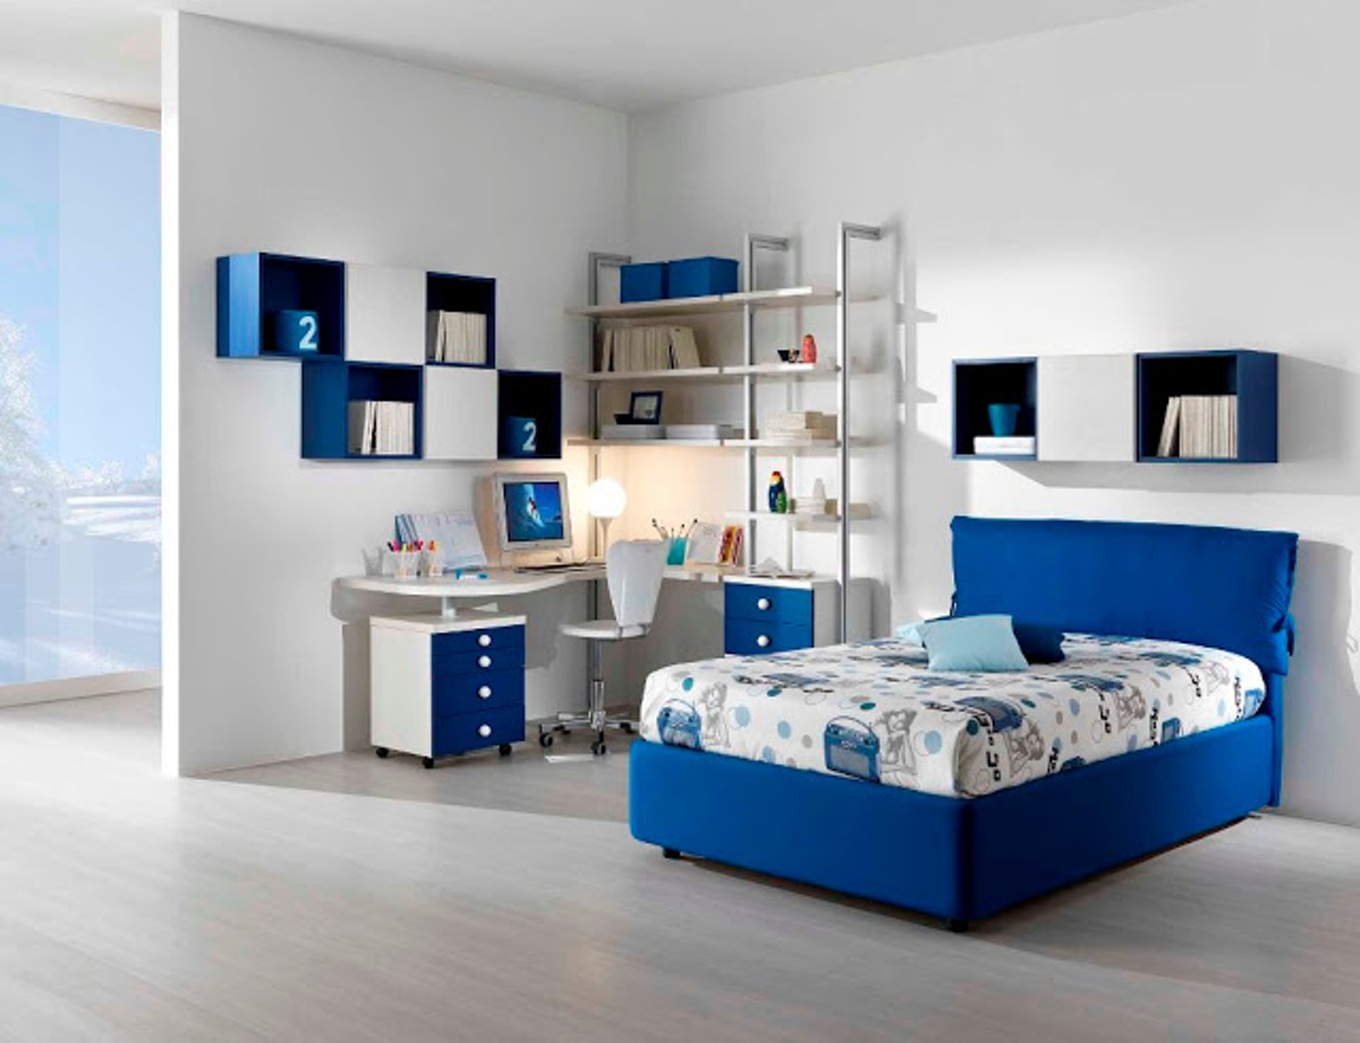 decoration deco chambre ado garcon style new york idee chambre chambre design ado garc3a7on chambre design ado